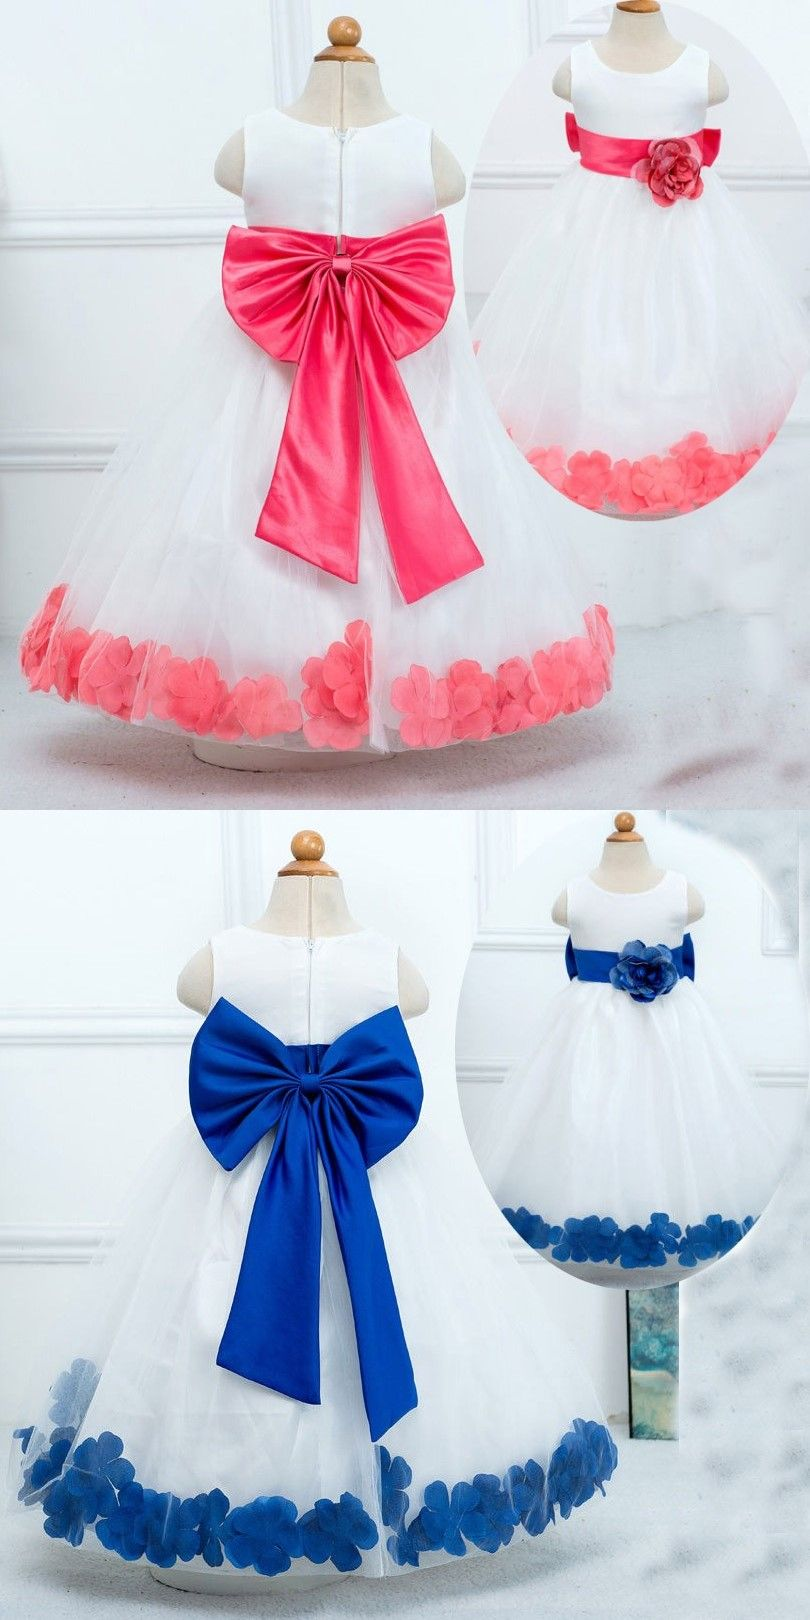 e70700a1cb Sweet Scoop Princess Sleeveless Tulle White Flower Girl Dress Wedding Party  with Blue Flower Bowknot